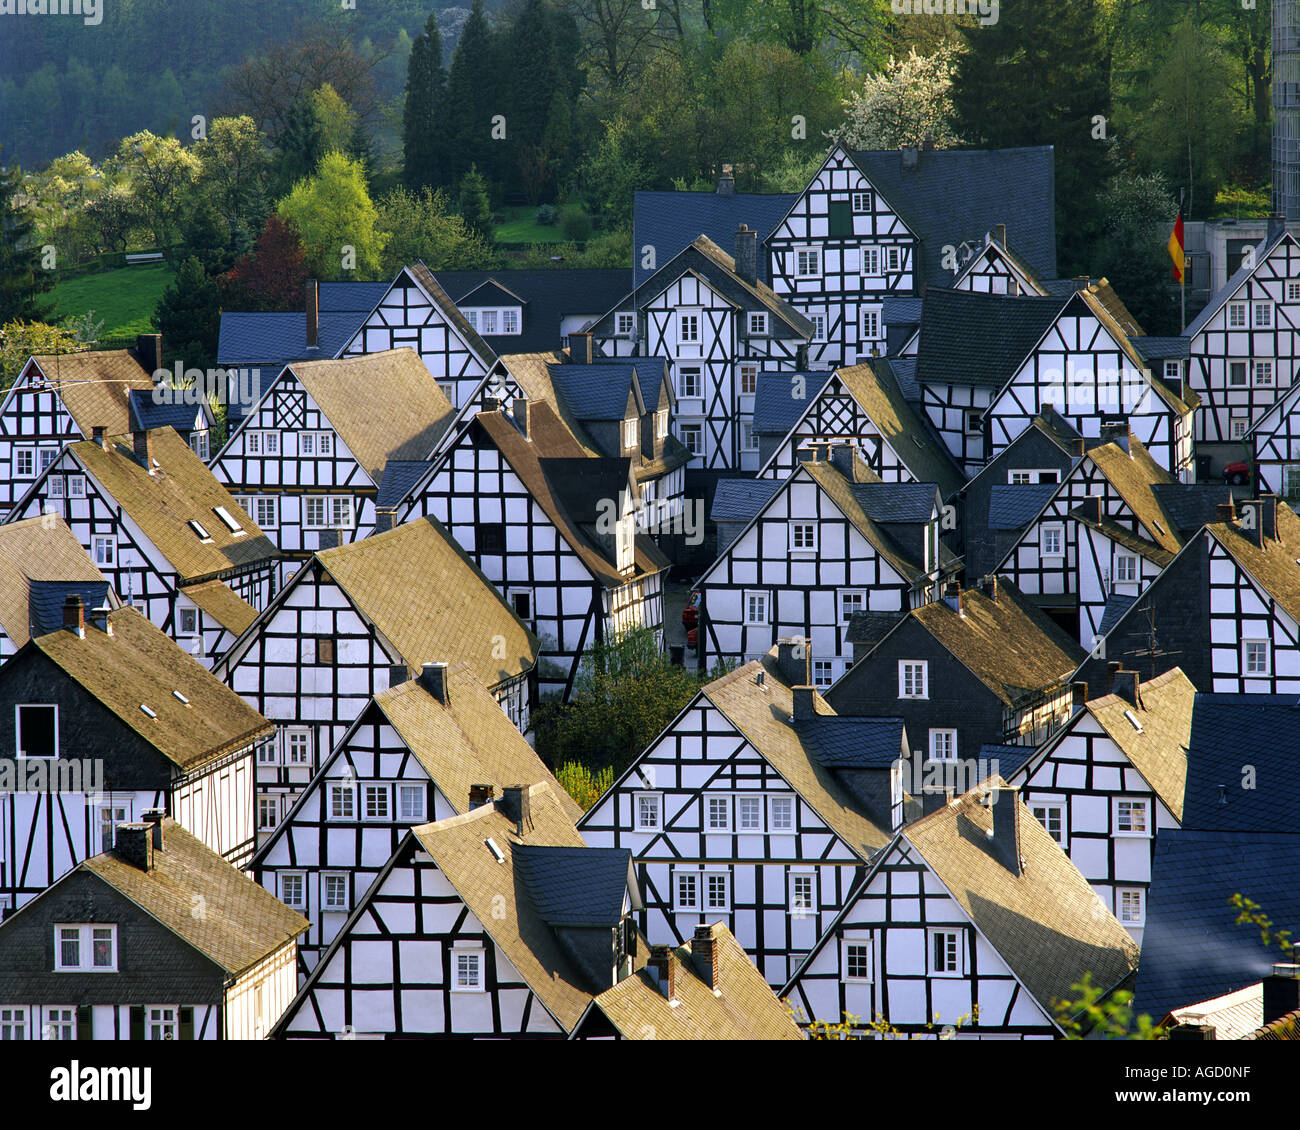 DE - NORTH-RHINE-WESTPHALIA:   Picturesque village of Freudenberg - Stock Image